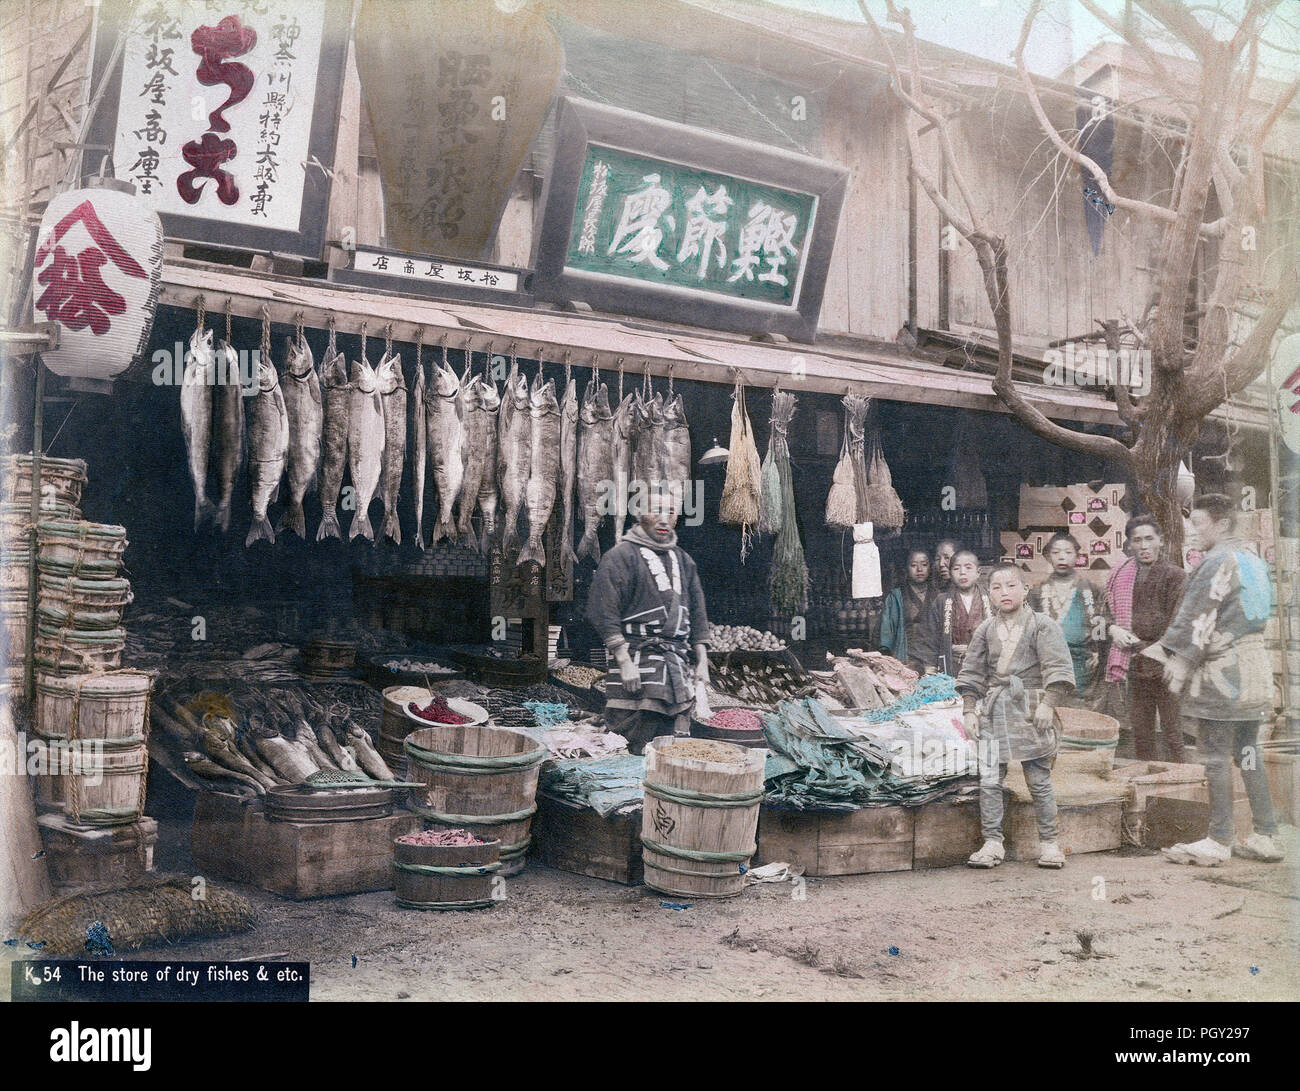 [ c. 1880s Japan - Grocery Store ] —   Matsuzakaya grocery store, probably in Yokohama. One of the signs of this rather large store reads, 'Special Agents for Kanagawa Prefecture.'  The other signs advertise 'Katsuobushi Dokoro' (dried bonito flakes) and 'Sarashikuri Mizuame' (bleached chestnut syrup). There is a great variety of foods on display: salted salmon, seaweed, squid, shrimps, other dried food as well as miso (soybean paste) and tsukemono (pickles). The boys are most likely live-in employees.  19th century vintage albumen photograph. - Stock Image